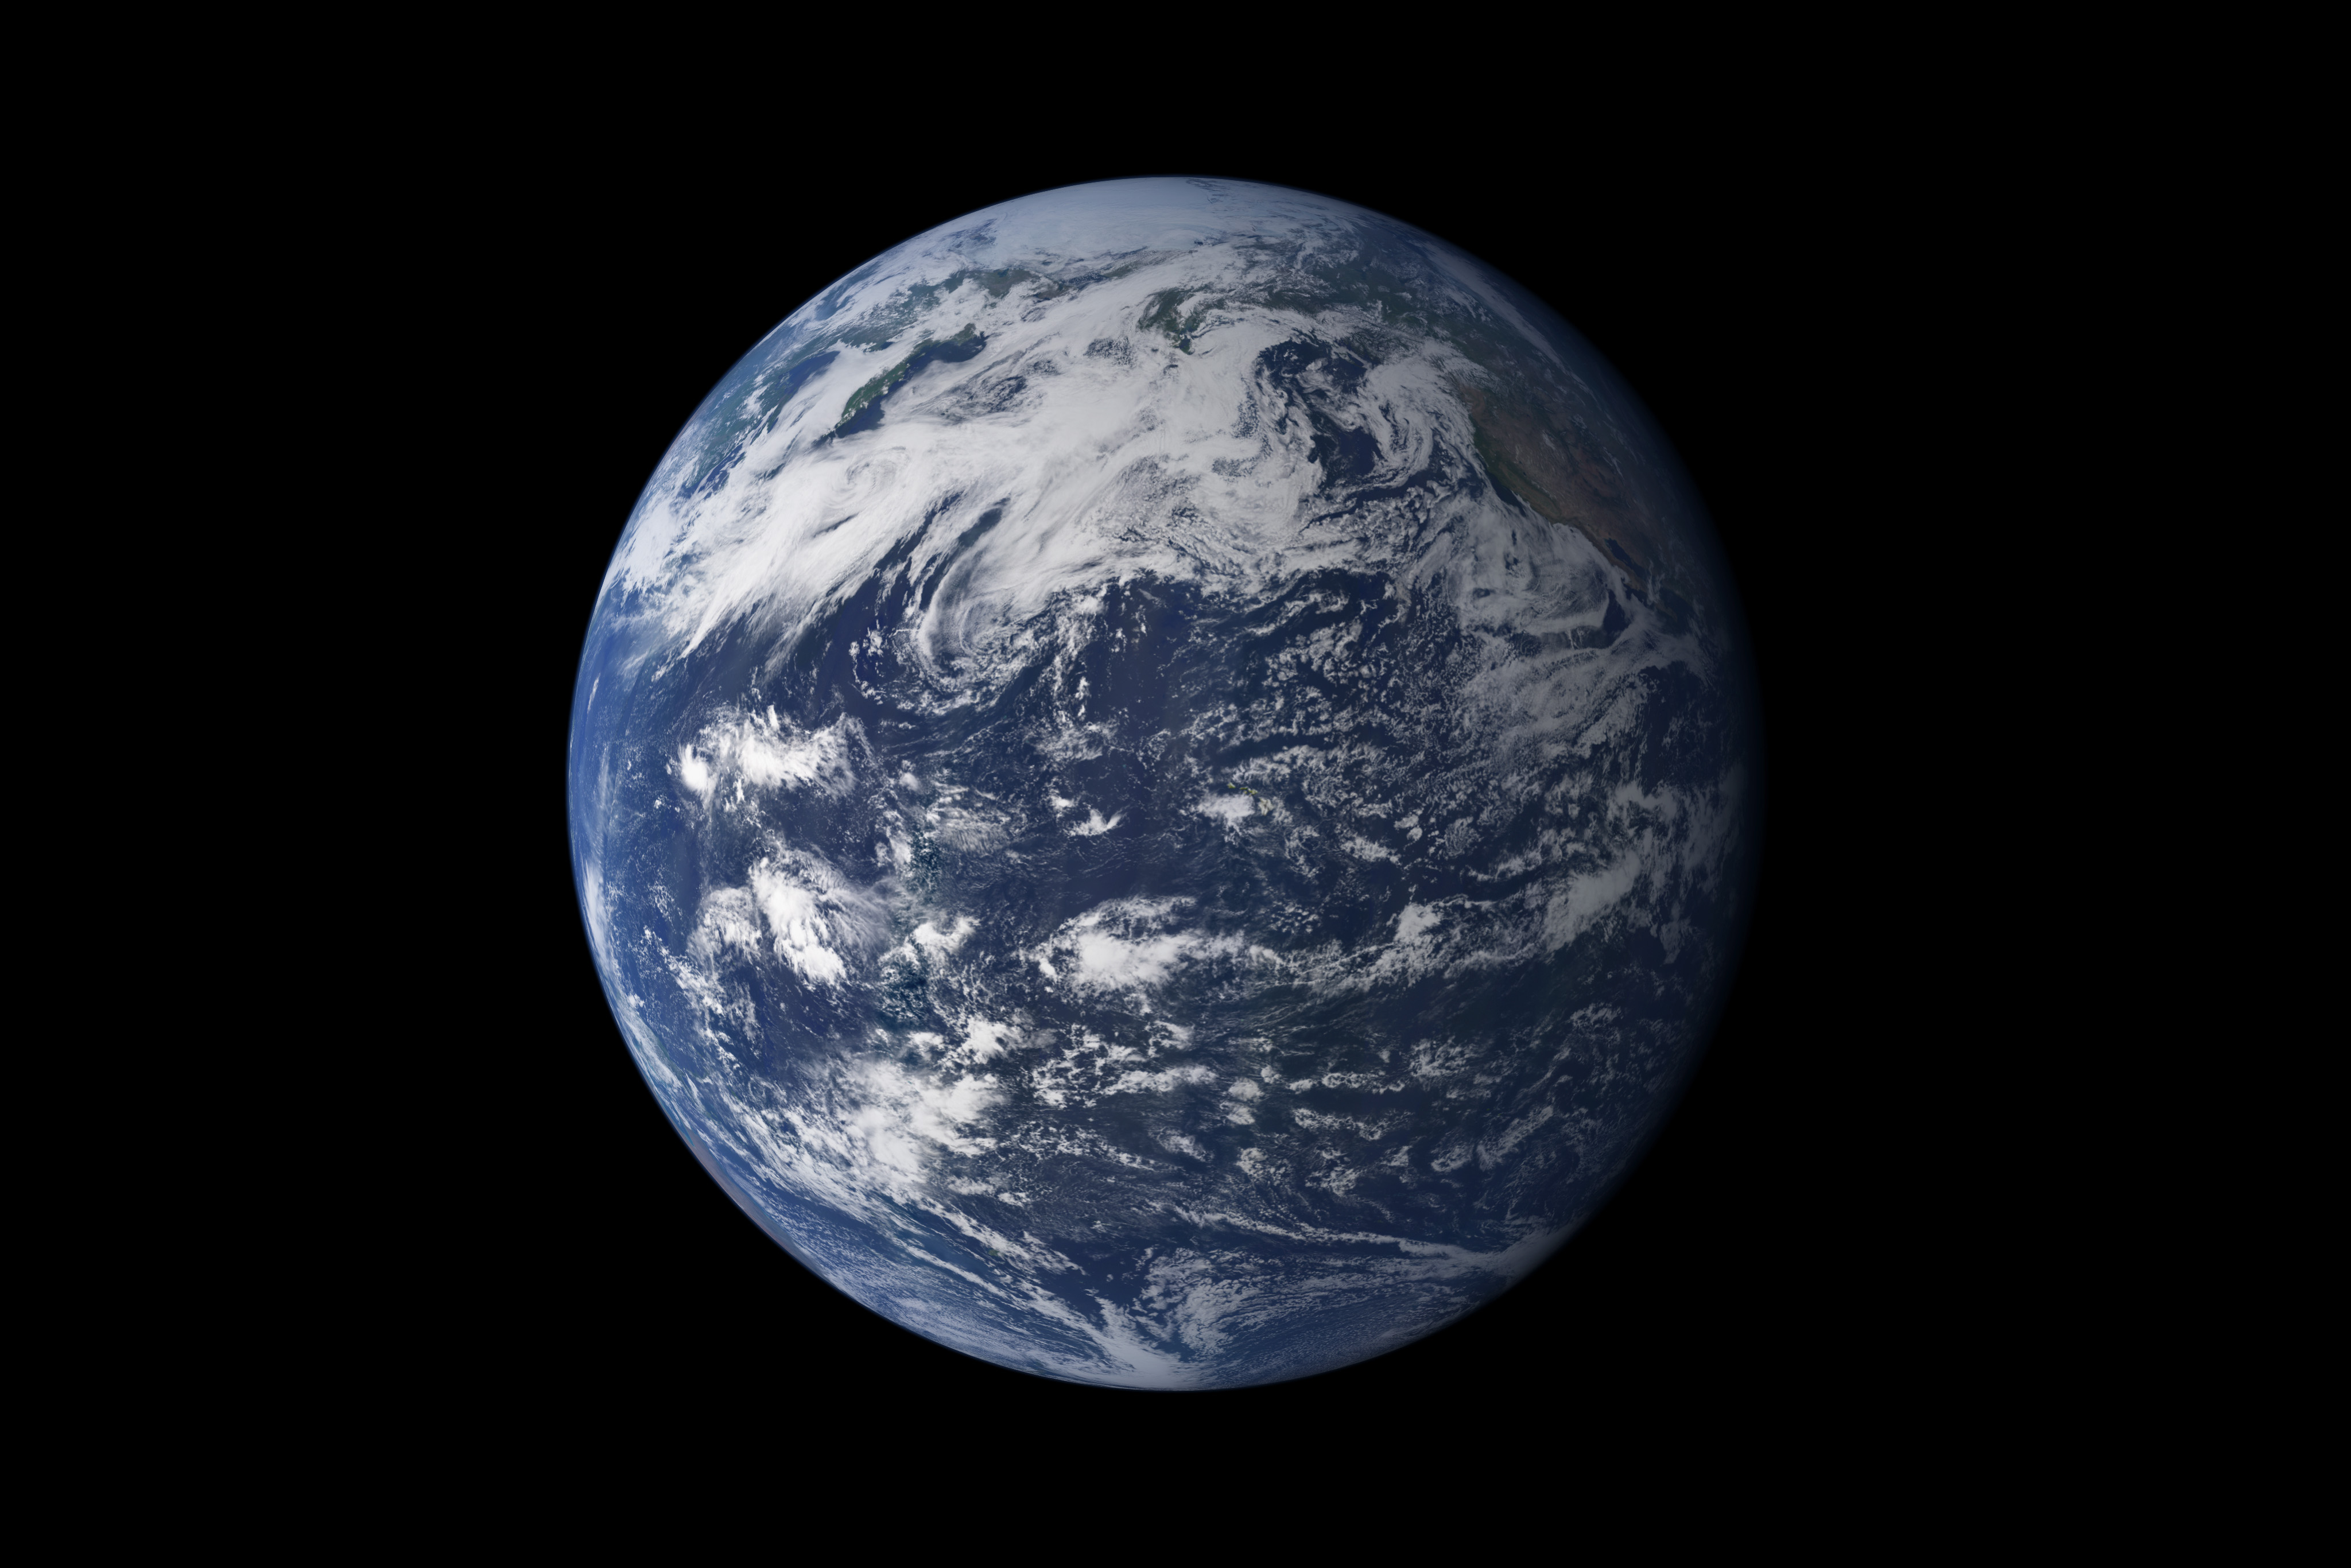 large pictures of planet earth - photo #30